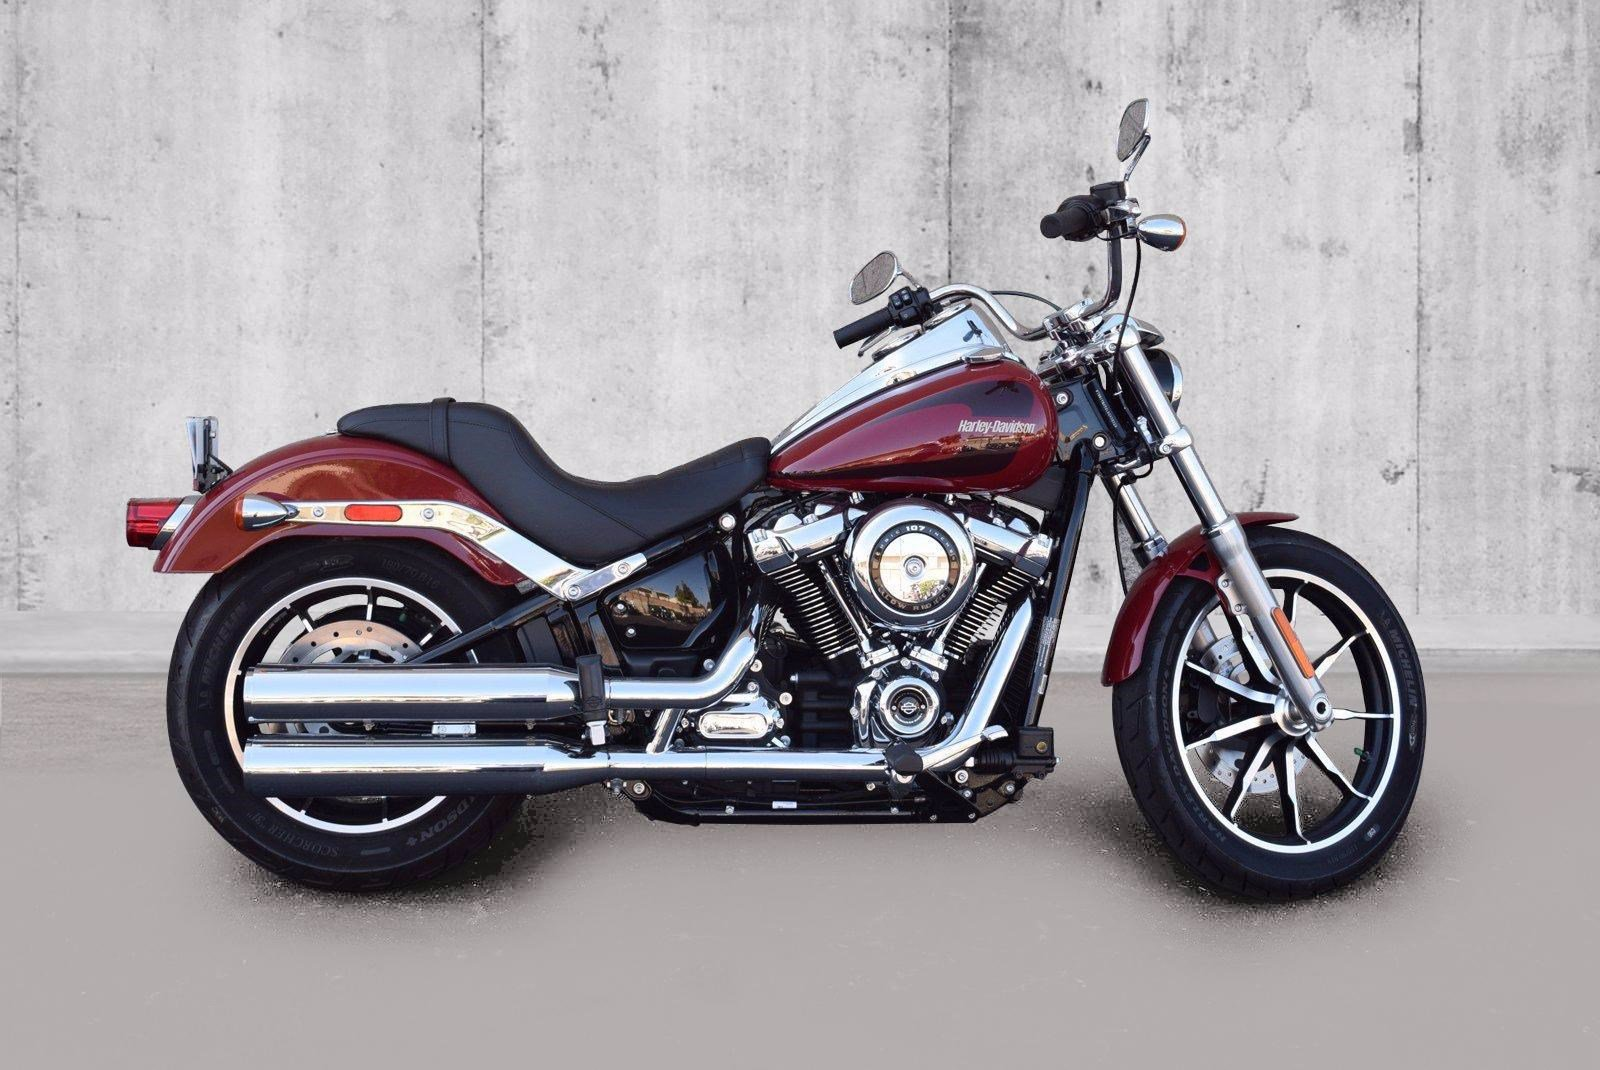 Pre-Owned 2020 Harley-Davidson Softail Low Rider FXLR